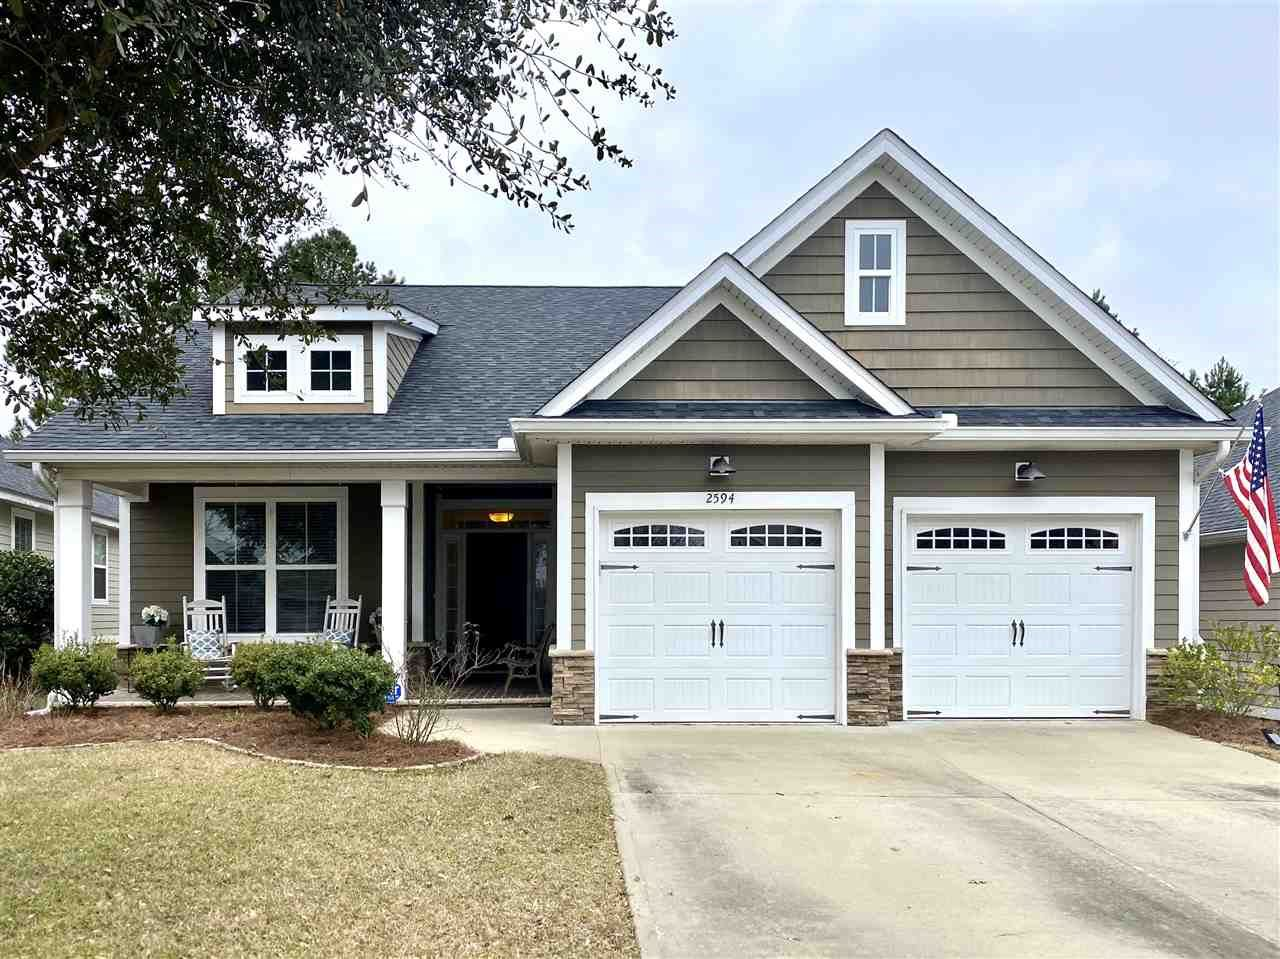 Photo of 2594 Manassas Way, TALLAHASSEE, FL 32312 (MLS # 327332)